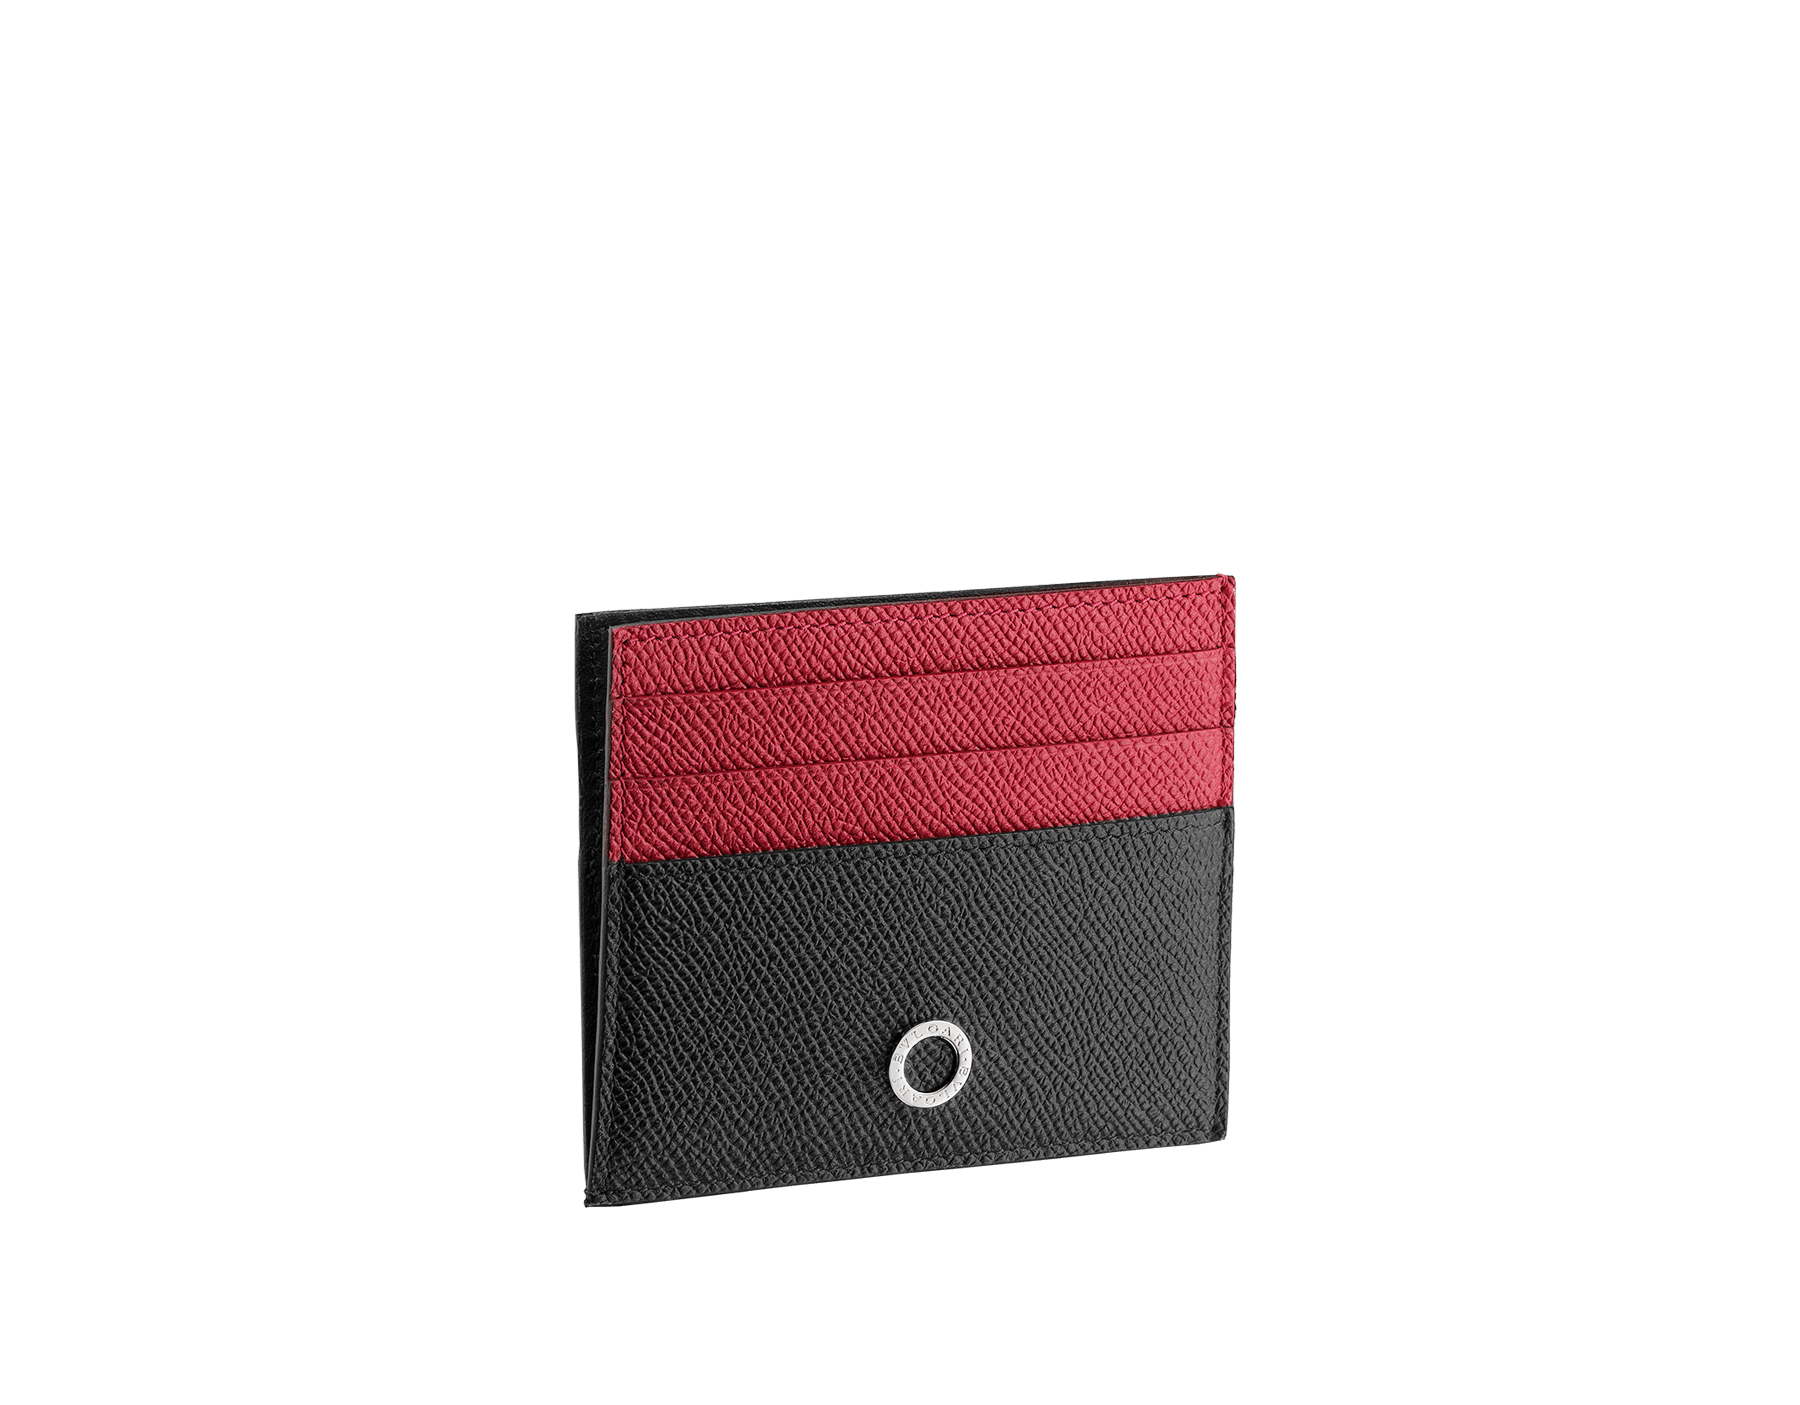 BVLGARI BVLGARI open credit card holder in black and ruby dahlia grain calf leather and black nappa lining. Iconic logo décor in palladium plated brass. 288309 image 1